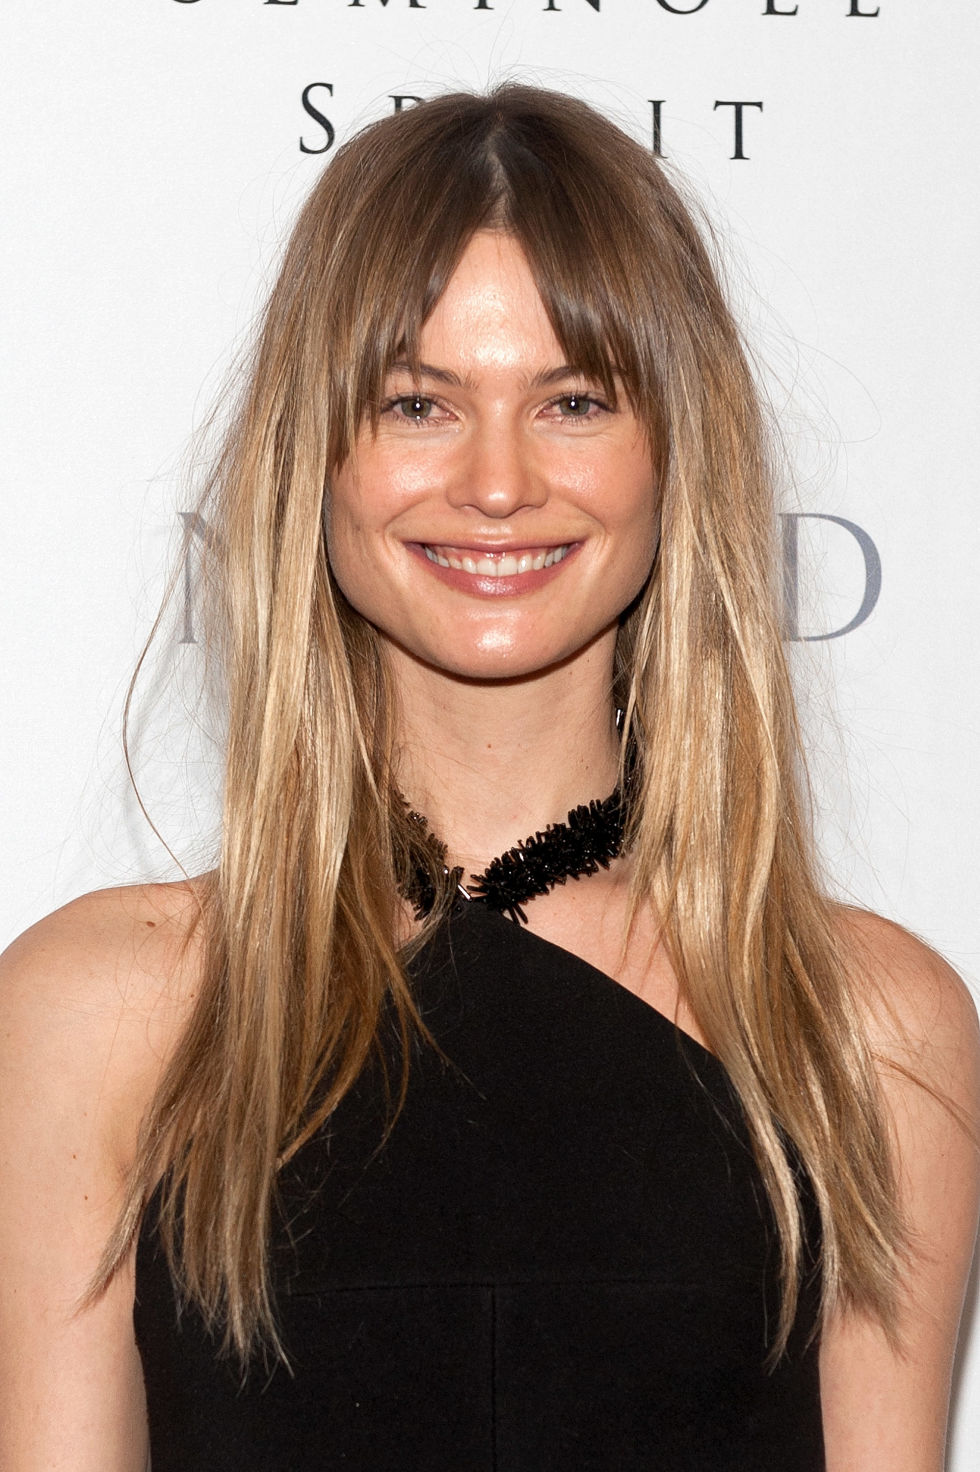 Sensational 35 Long Hairstyles With Bangs Best Celebrity Long Hair With Short Hairstyles For Black Women Fulllsitofus